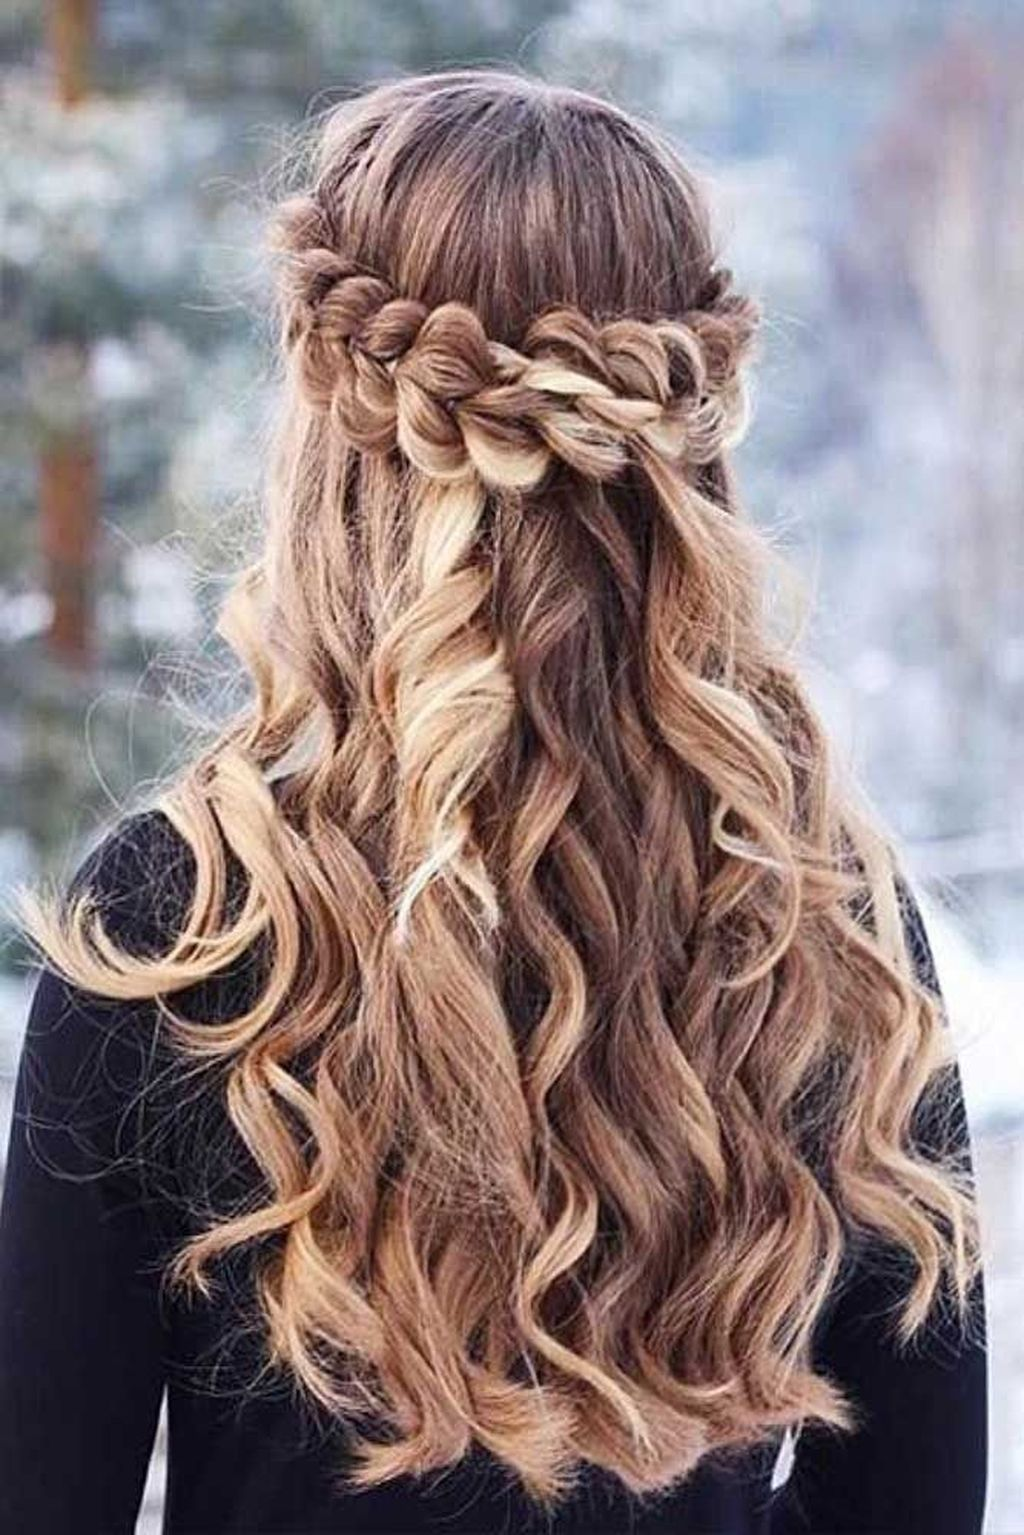 Awesome top women hairstyles suitable for this winter more at